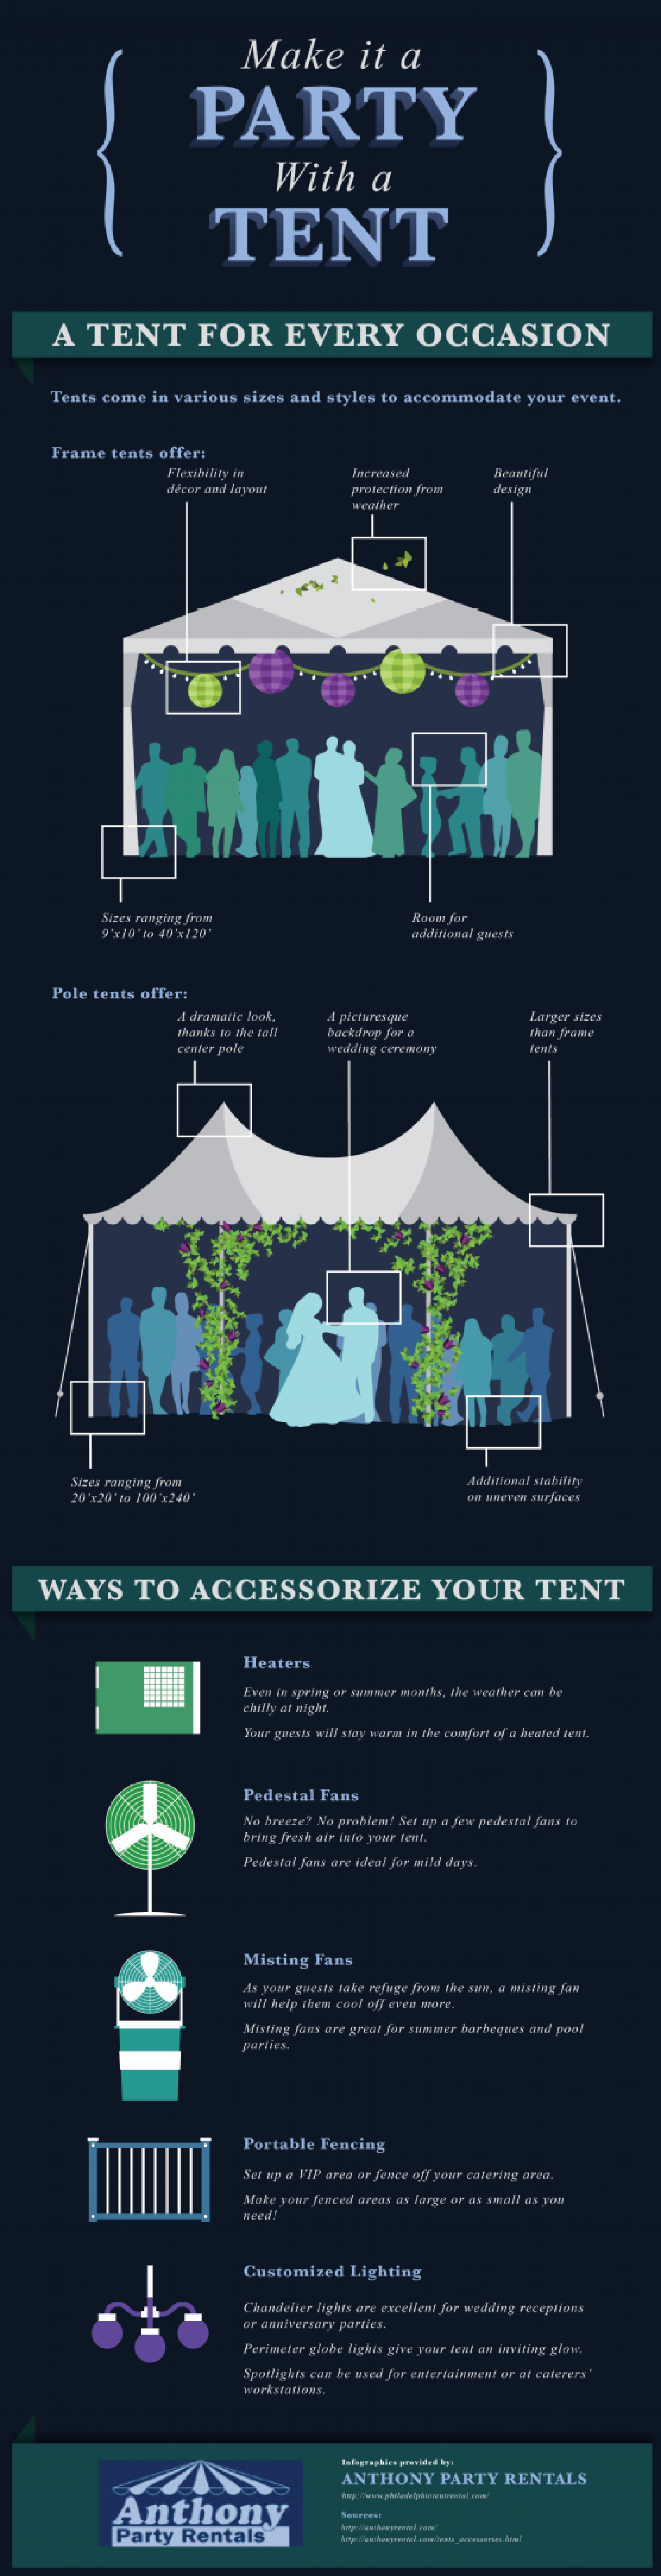 Make it a Party with a Tent! Infographic